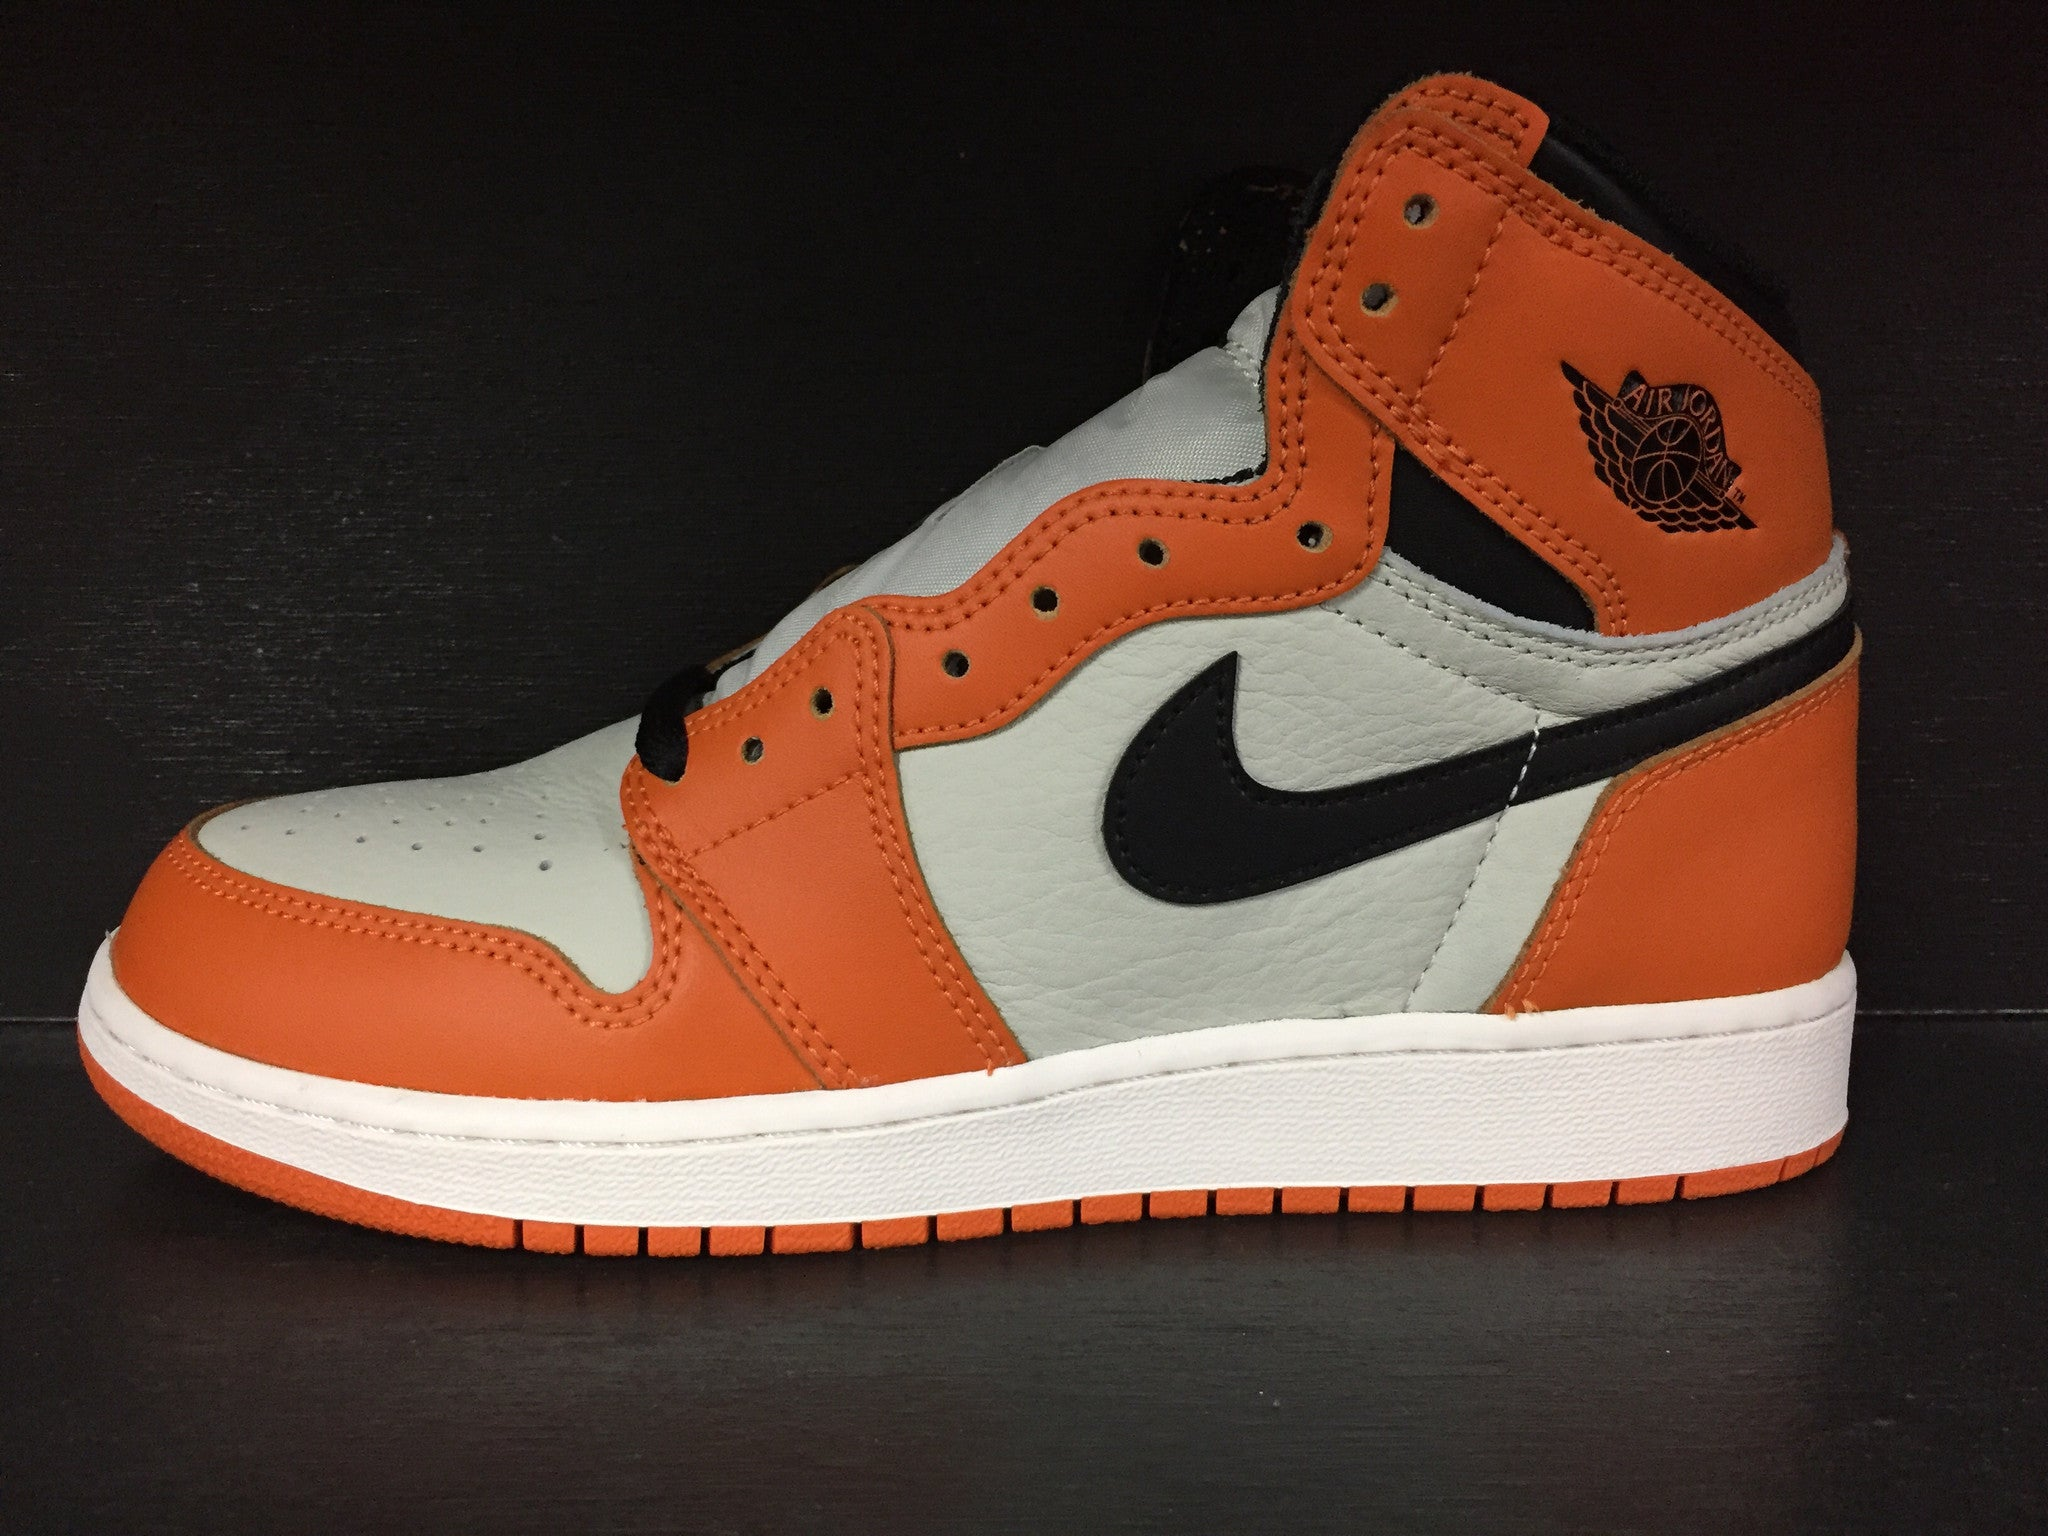 Air Jordan 1 Retro High 'Reverse Shattered Backboard' GS